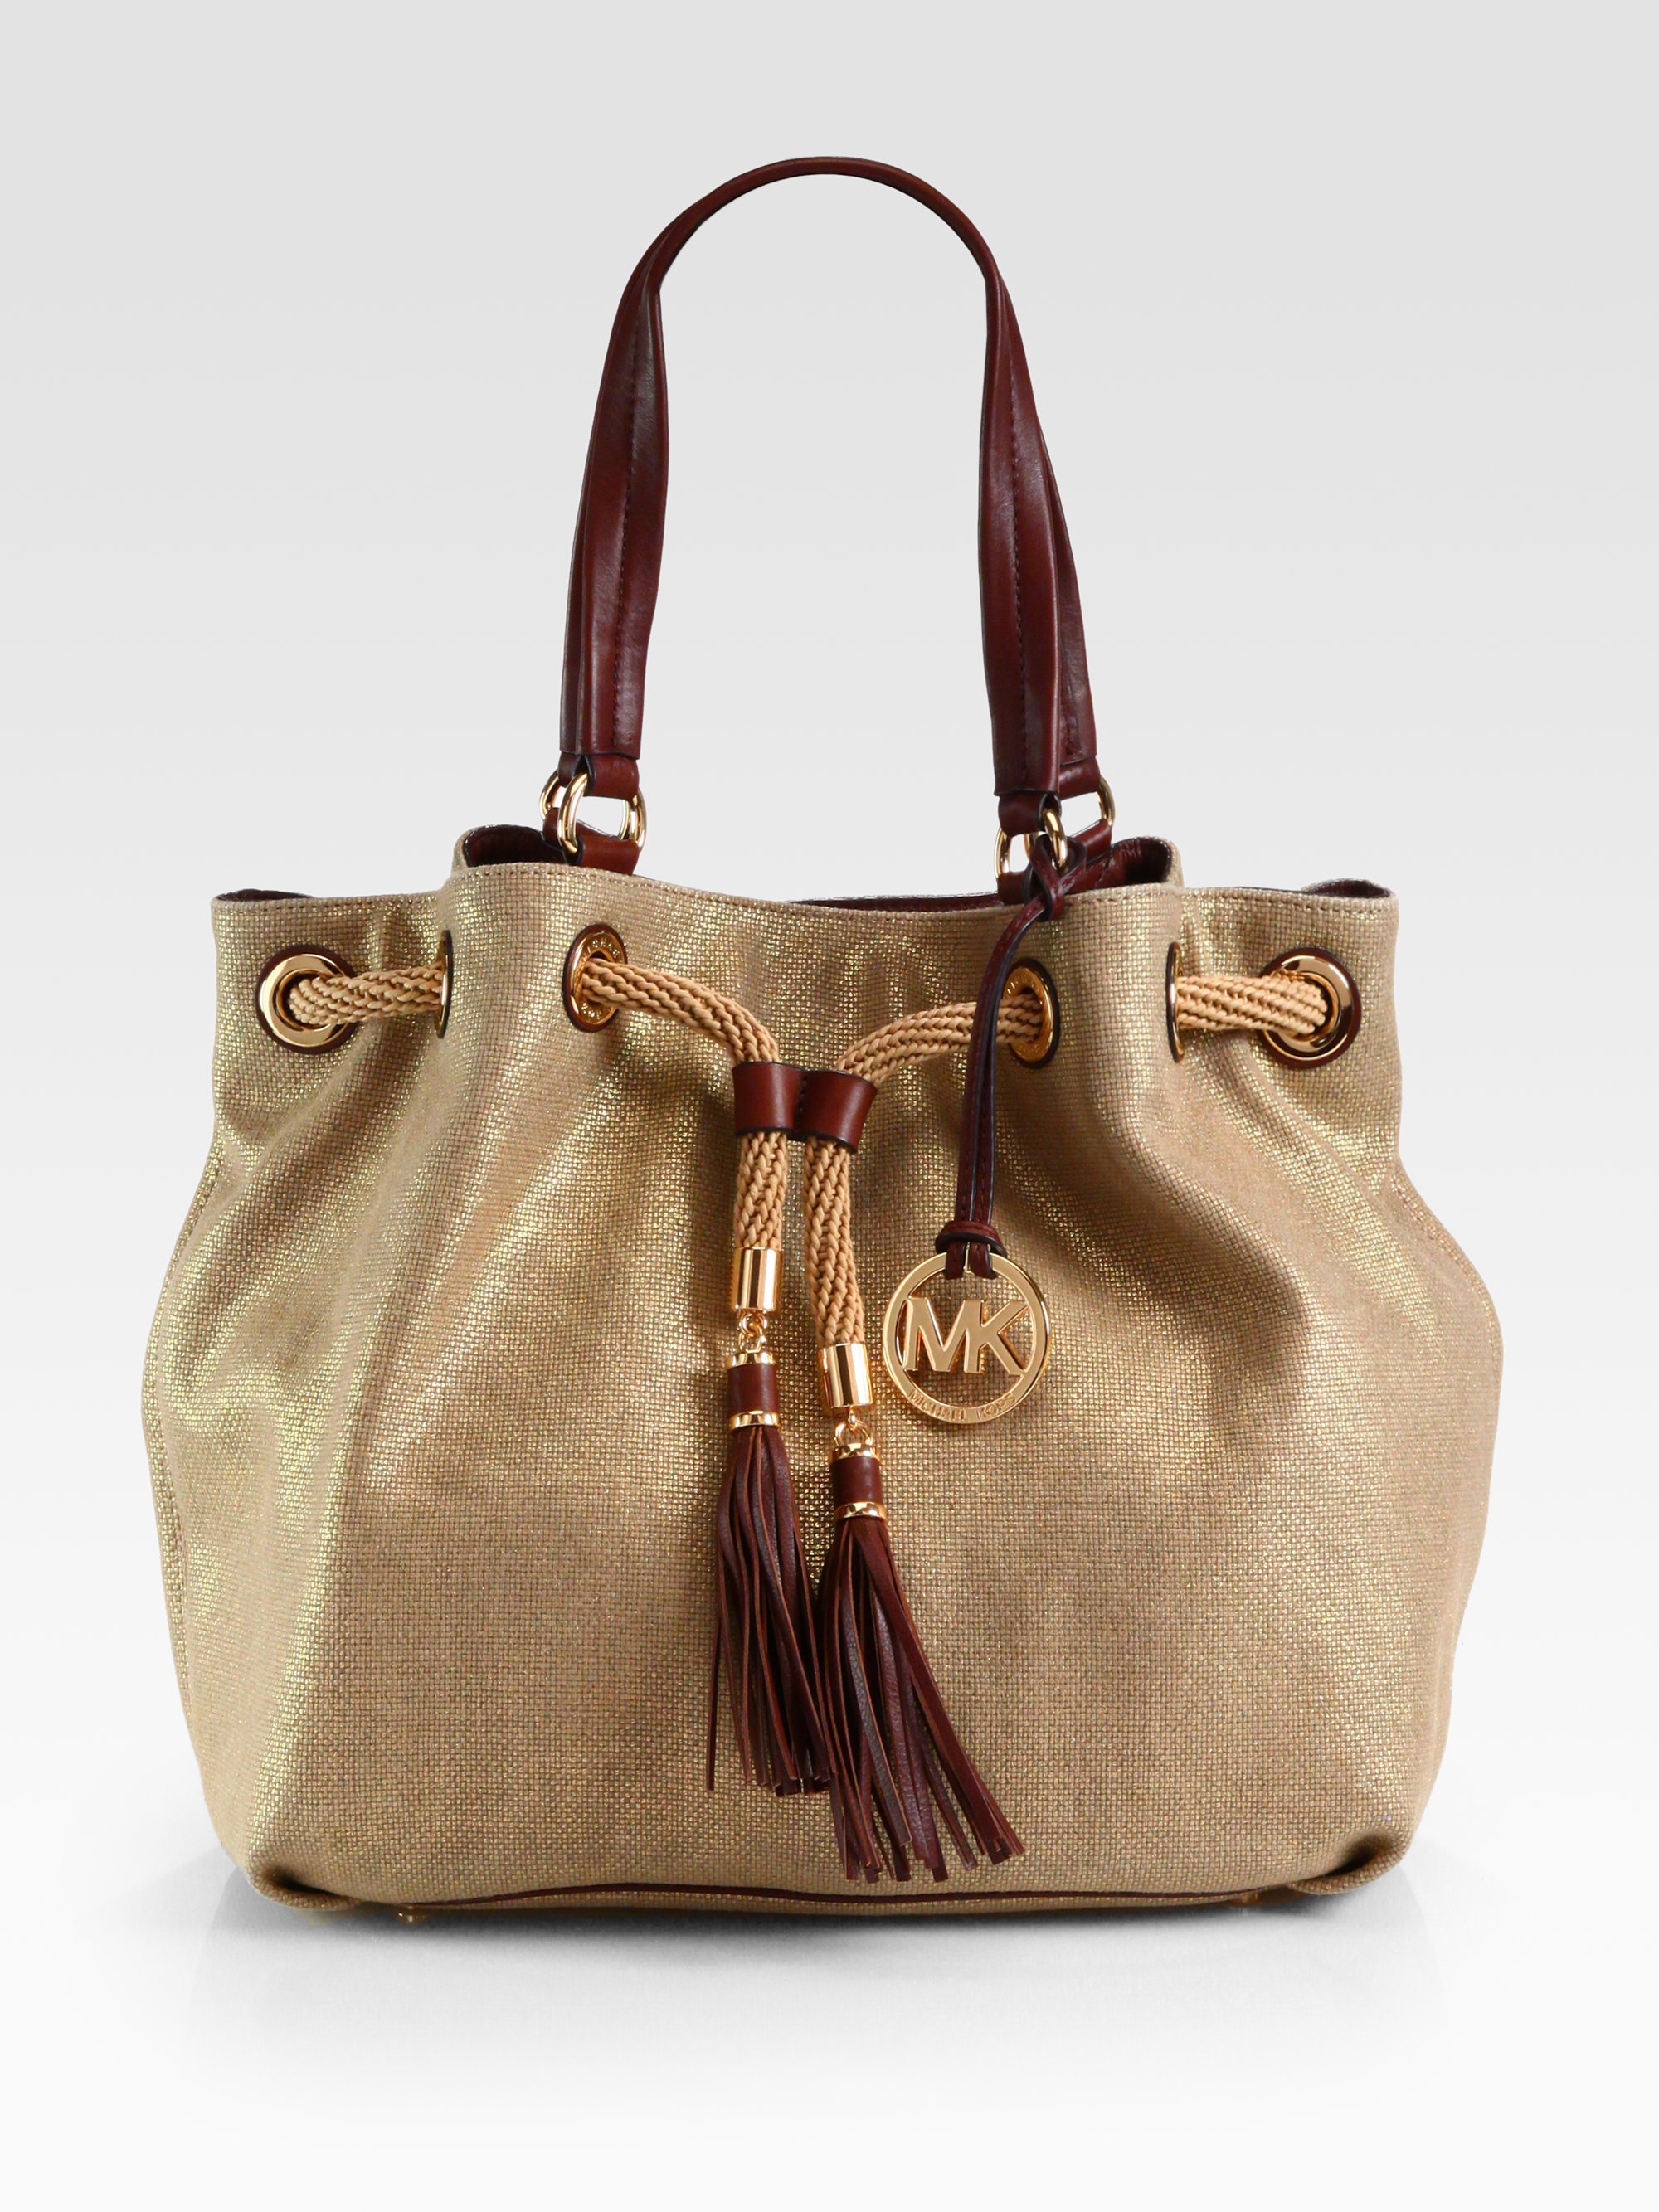 bd4d38aebe58 Gallery. Previously sold at: Saks Fifth Avenue · Women's Michael Kors Marina